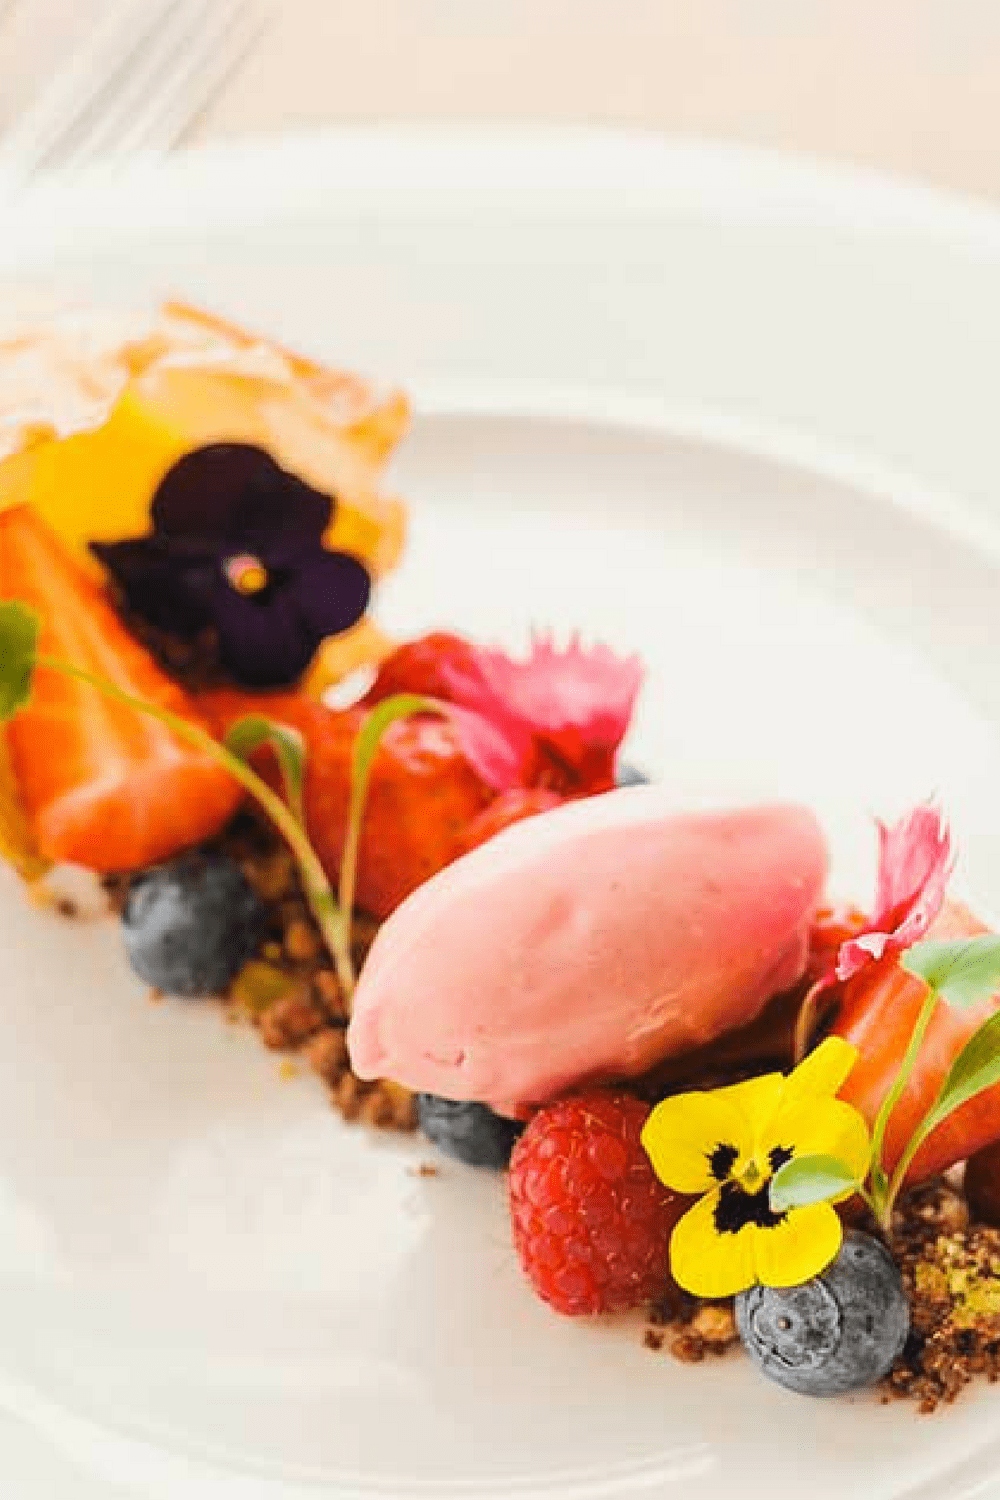 greenbank-gardens-dessert-waters-edge-restaurant-edible-flowers-locally-sourced